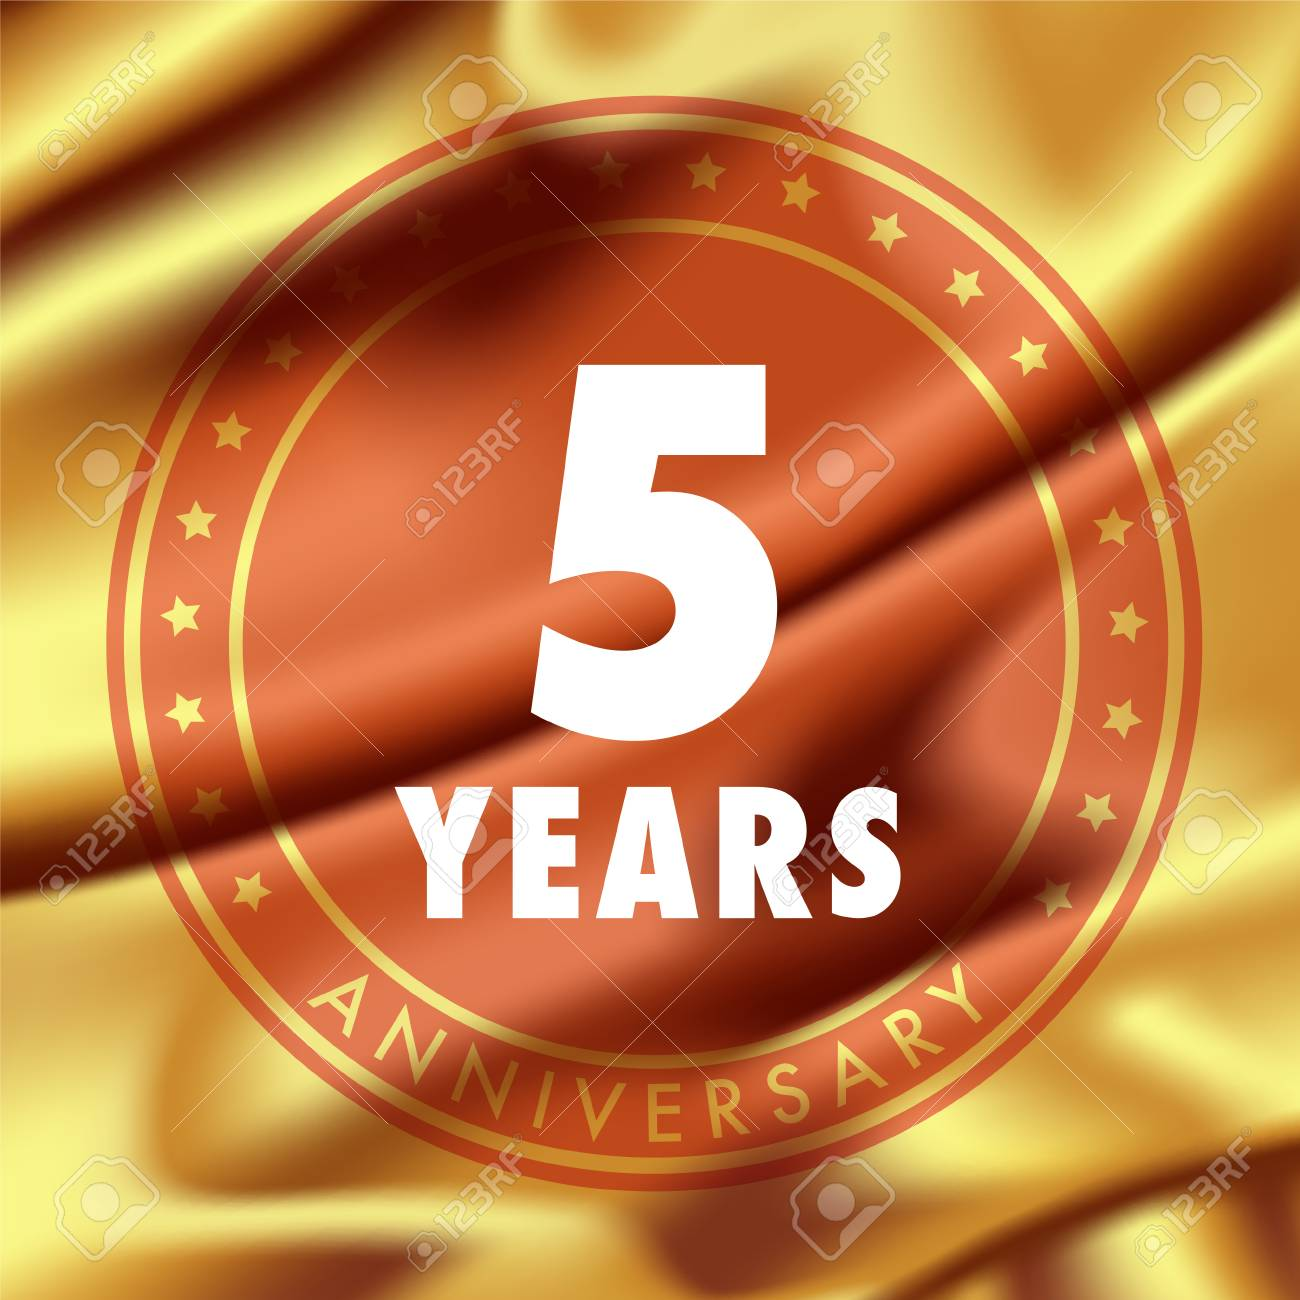 5 Years Anniversary Vector Icon Logo Template Design Element